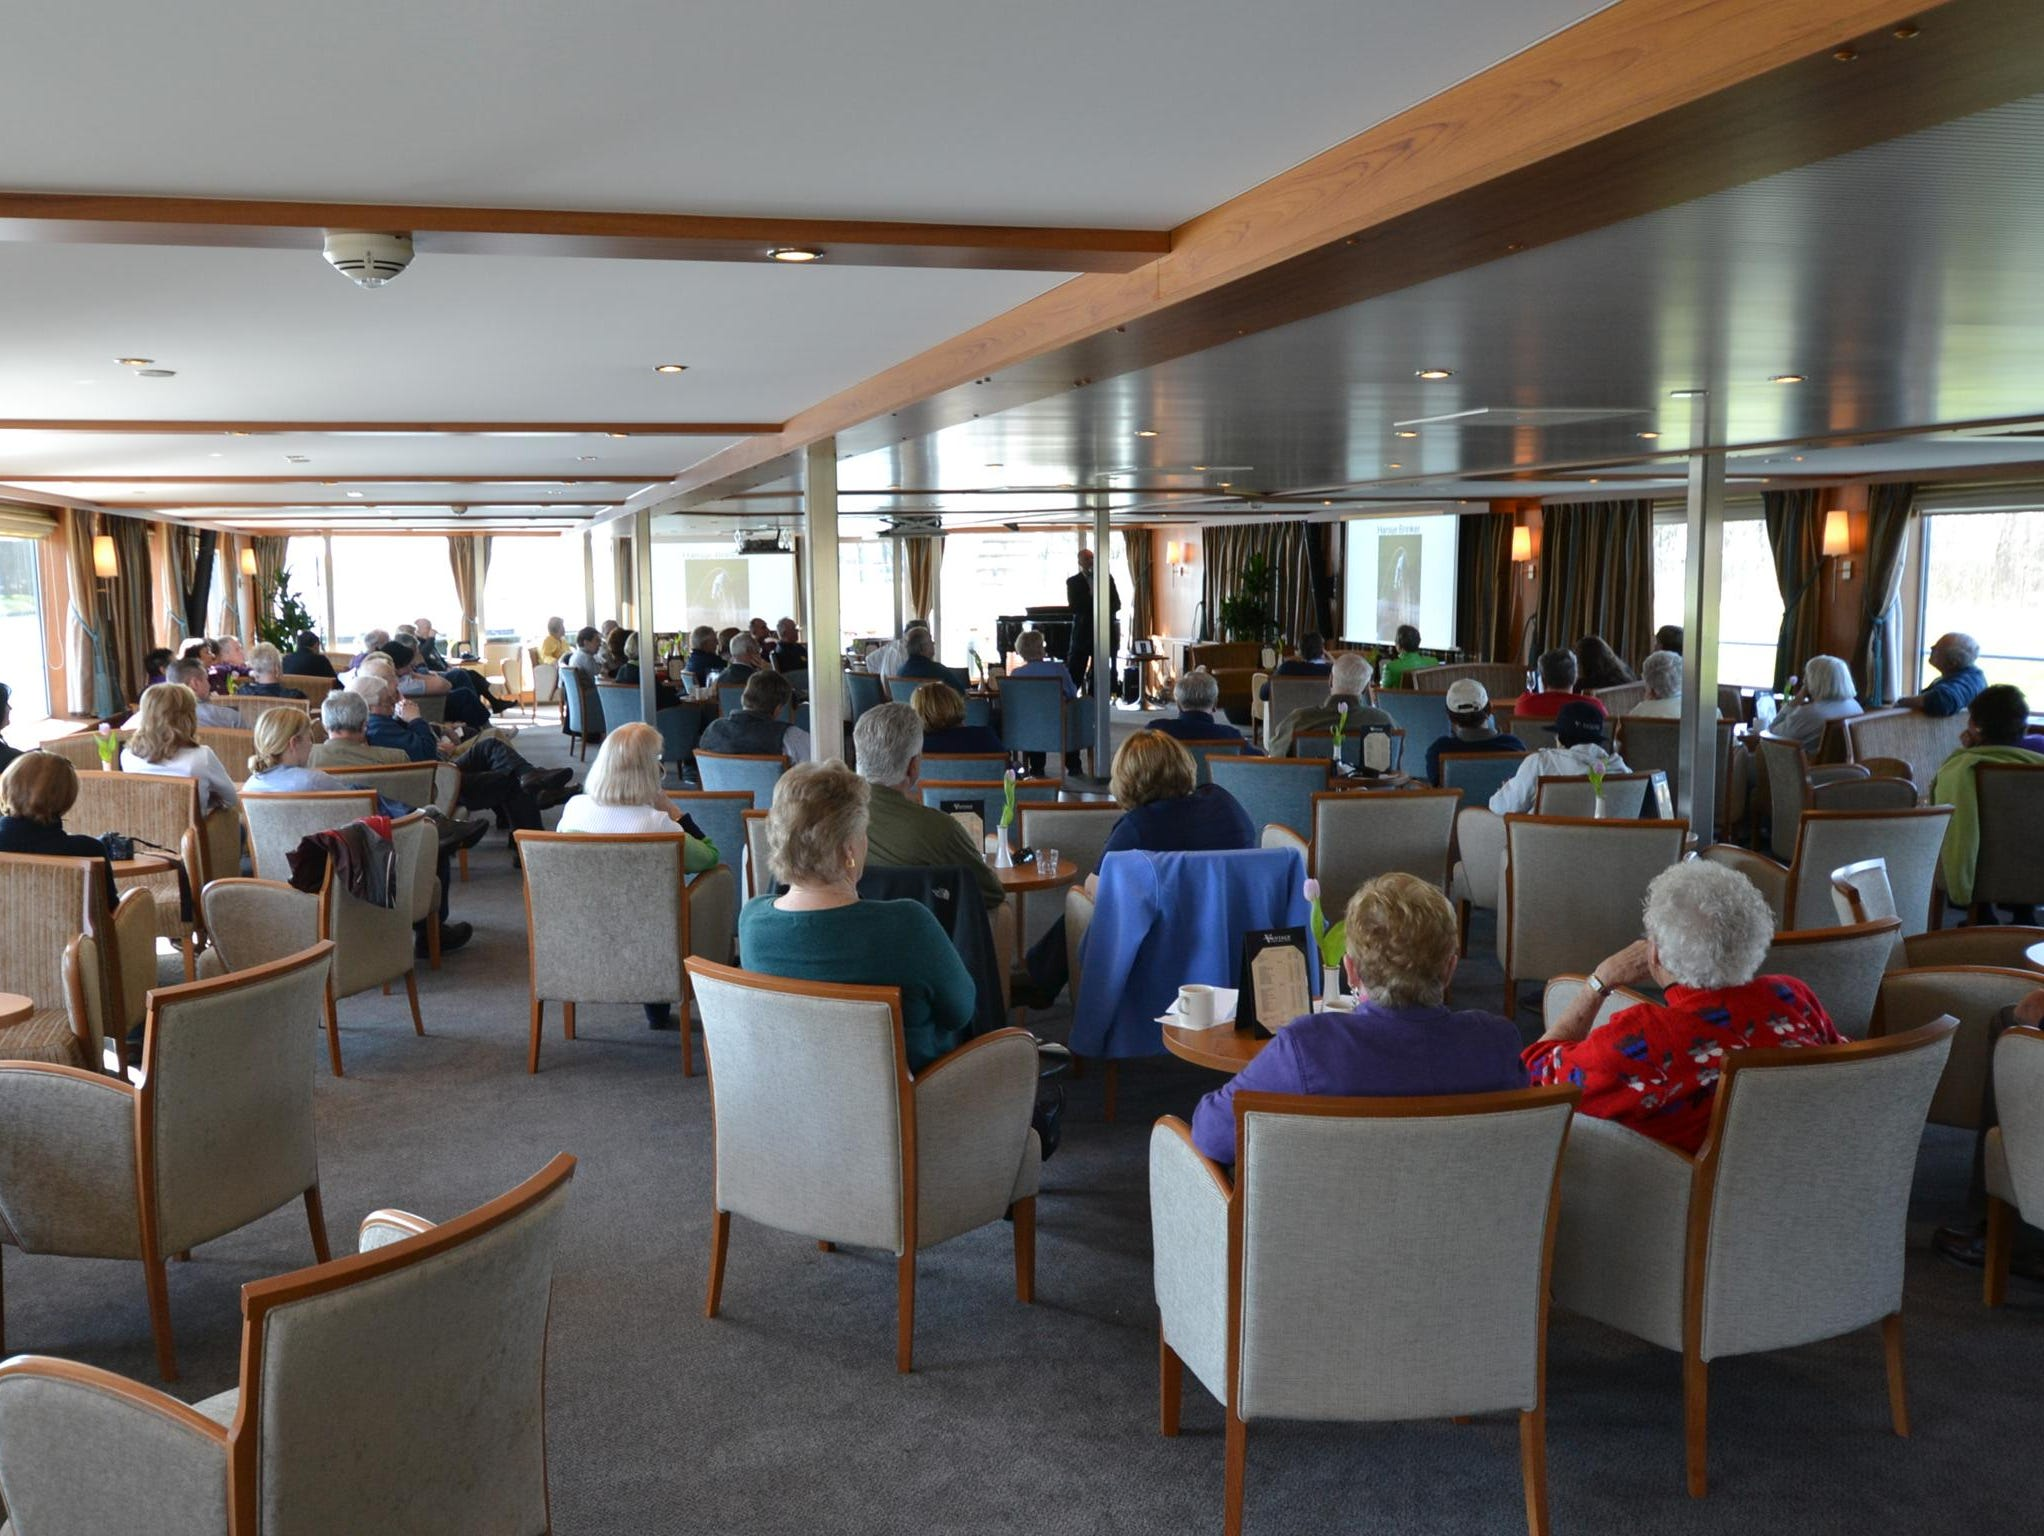 Like other river ships in Europe, the River Discovery II features a large lounge at its front that serves as a central gathering place for passengers.